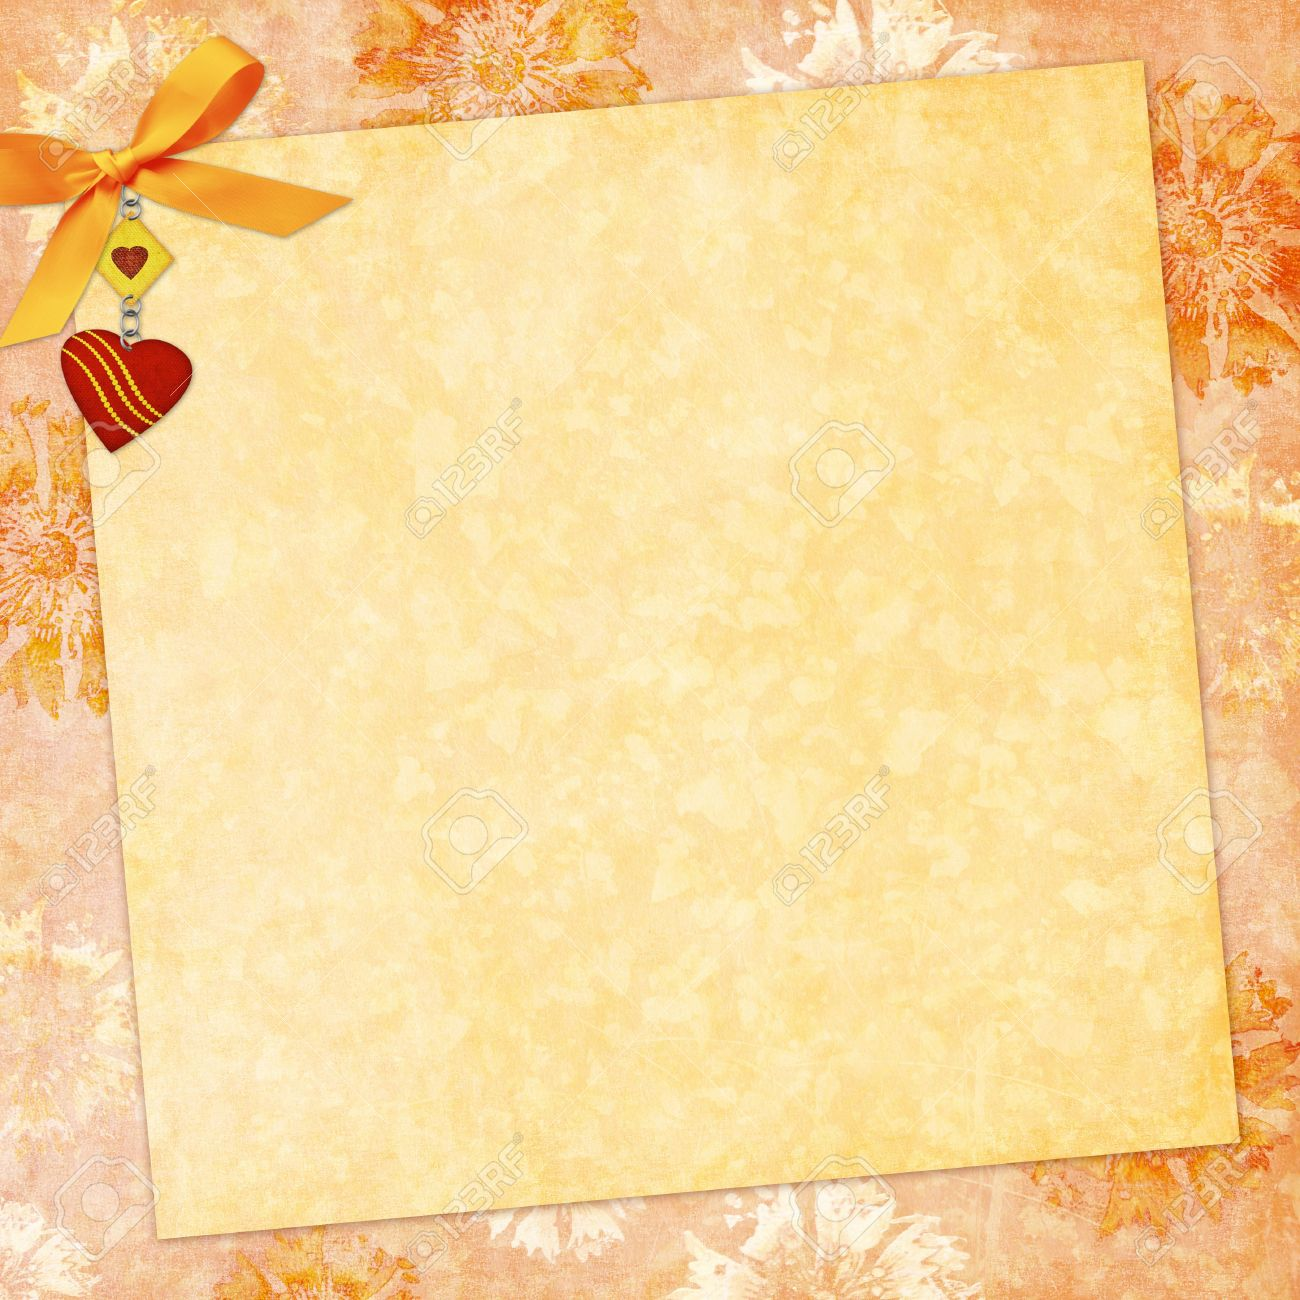 Vintage Background For Invitation Stock Photo Picture And Royalty